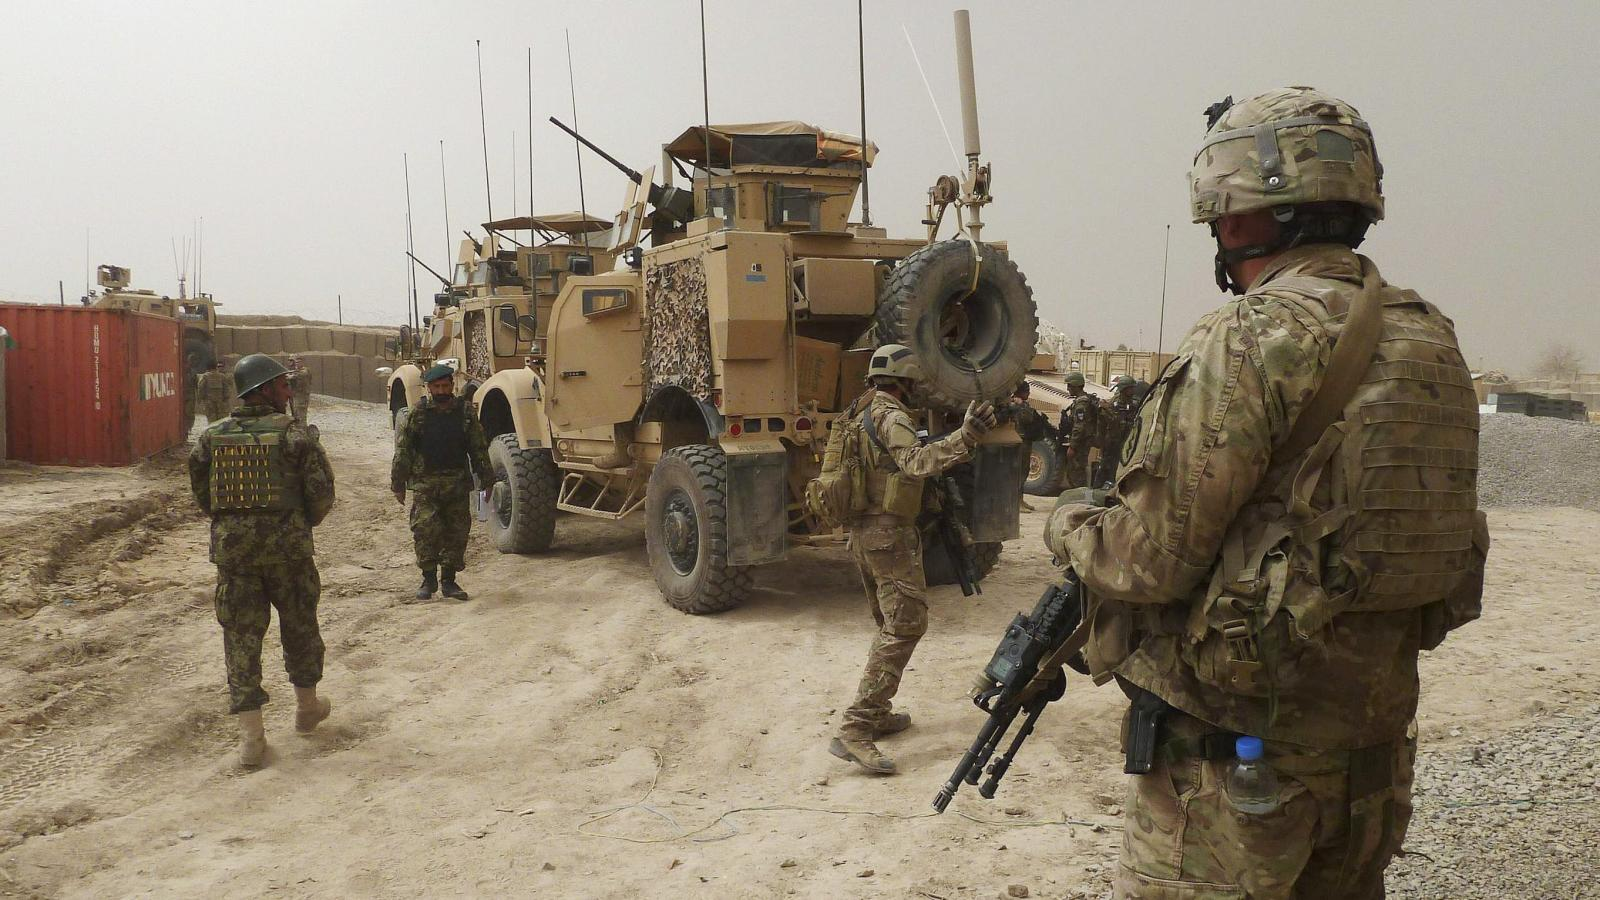 A timeline of US engagement in Afghanistan